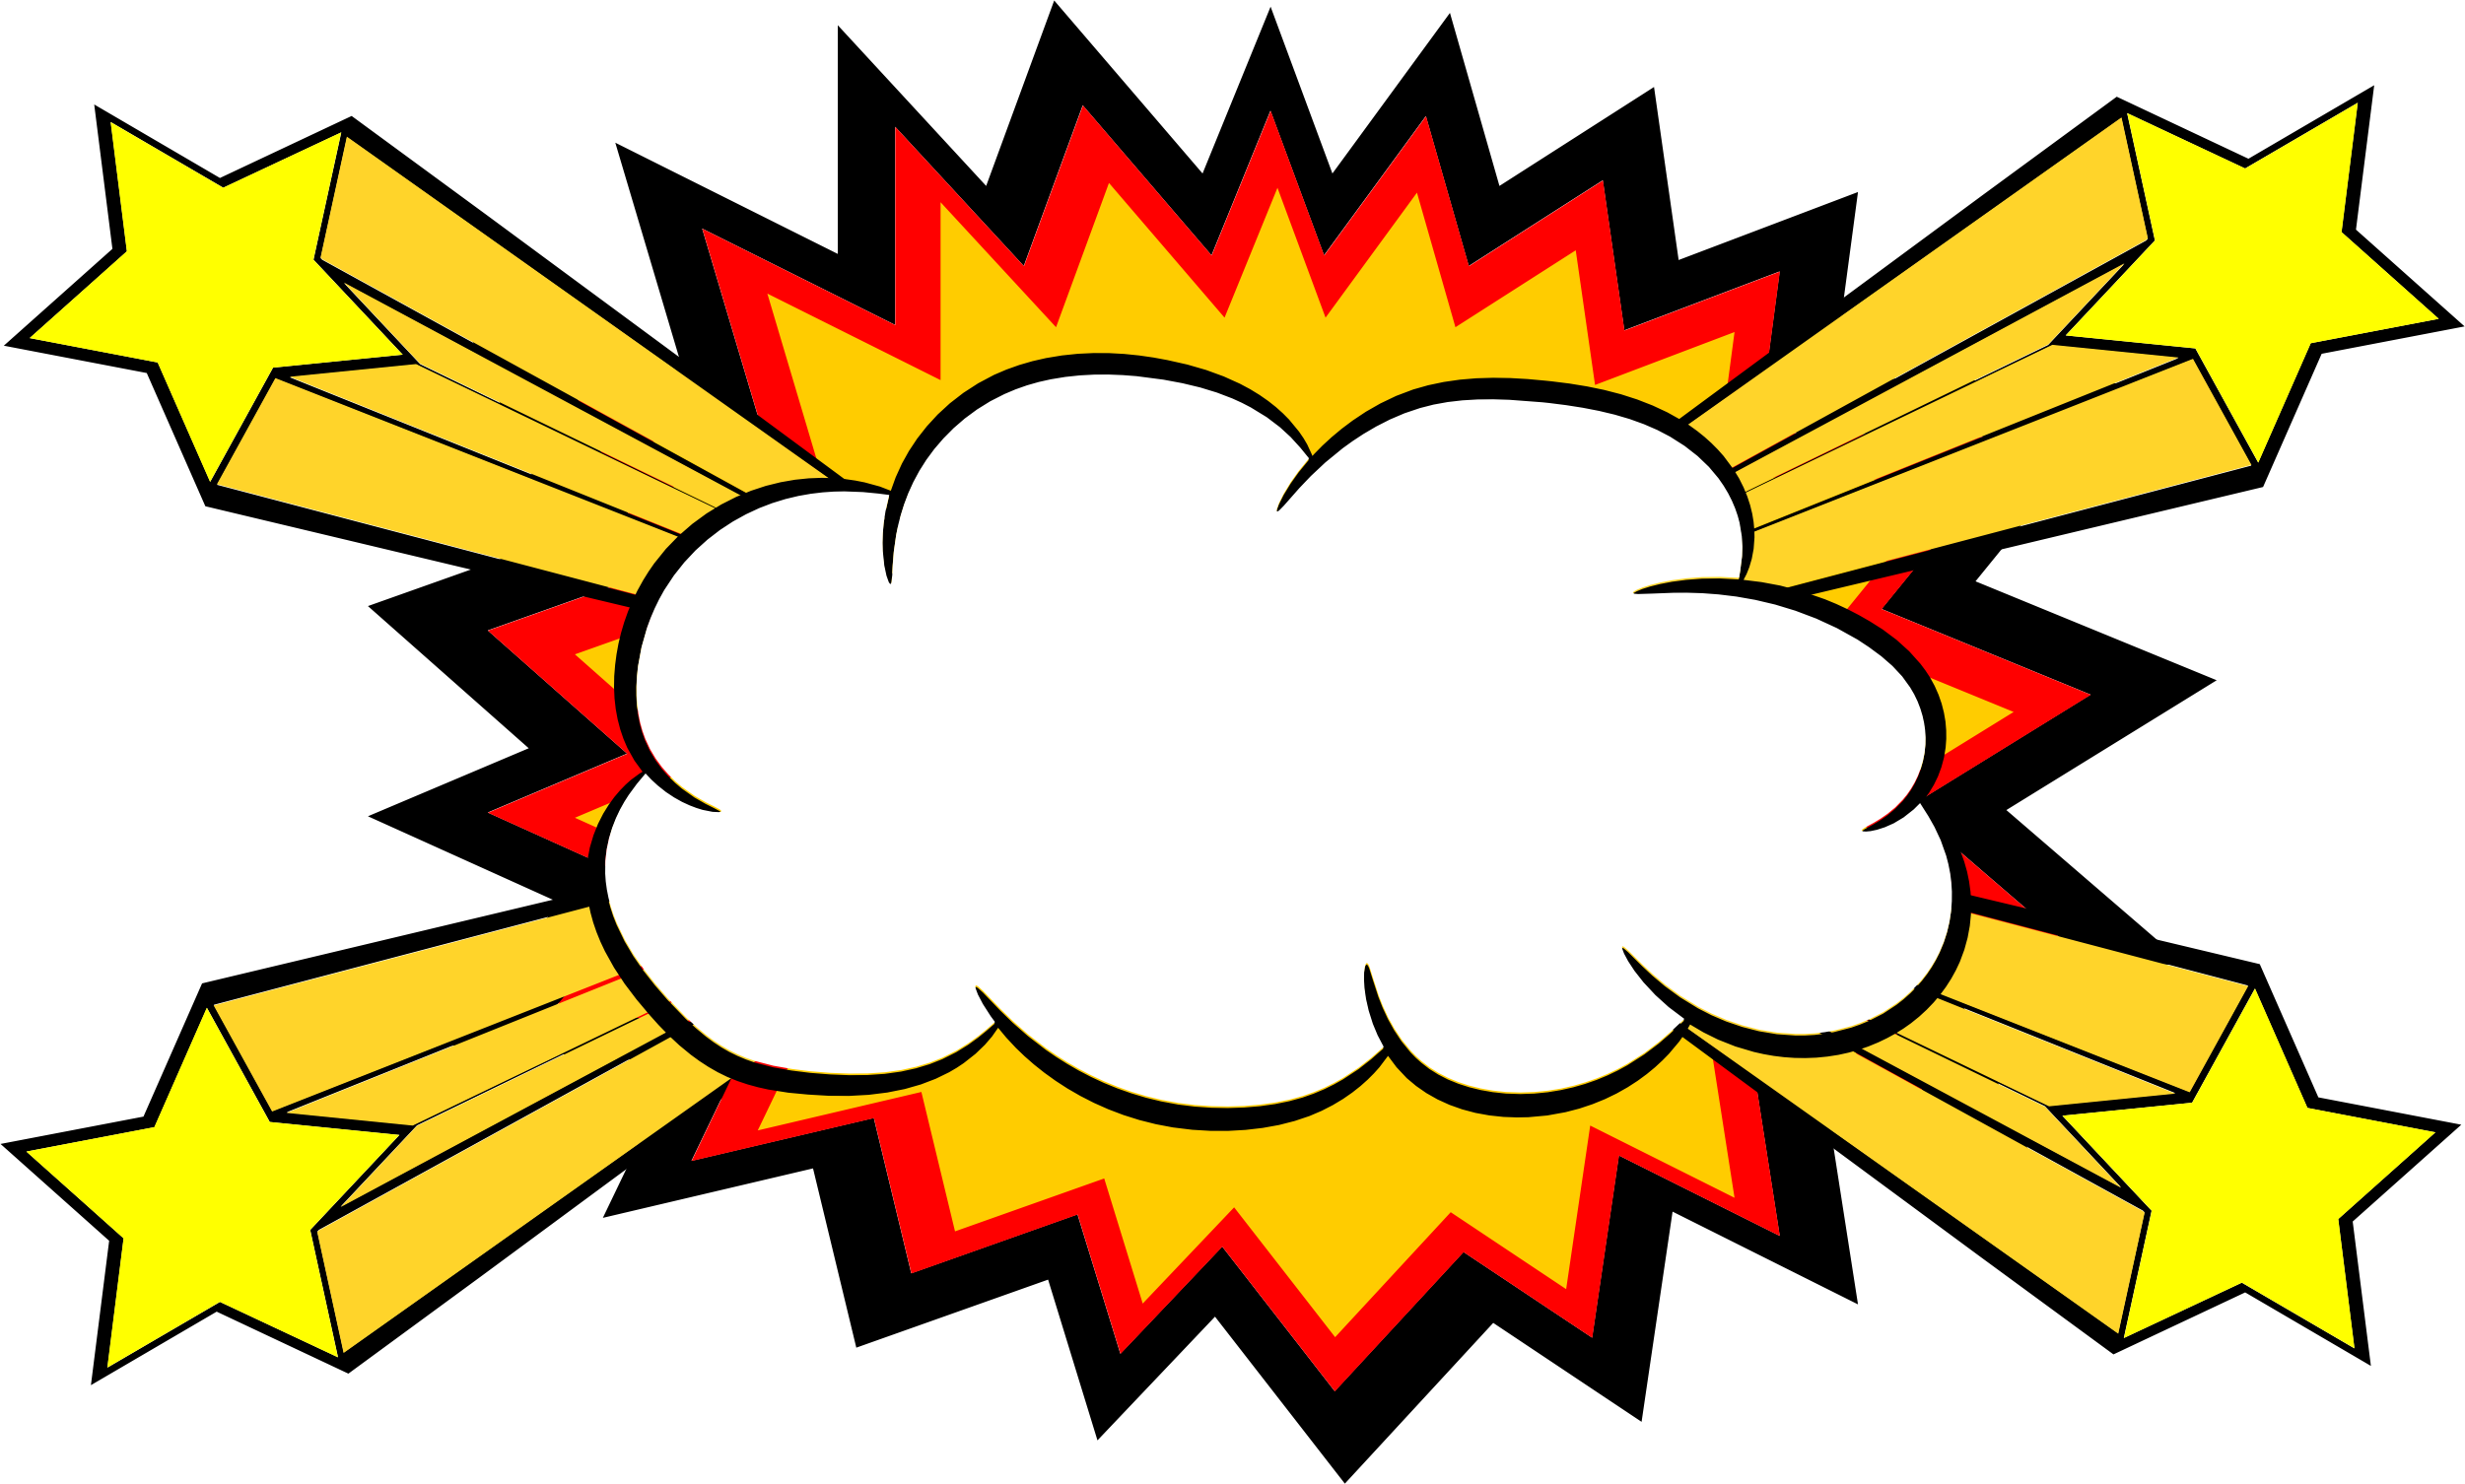 explosion bubble png. Clipart balloon comic strip